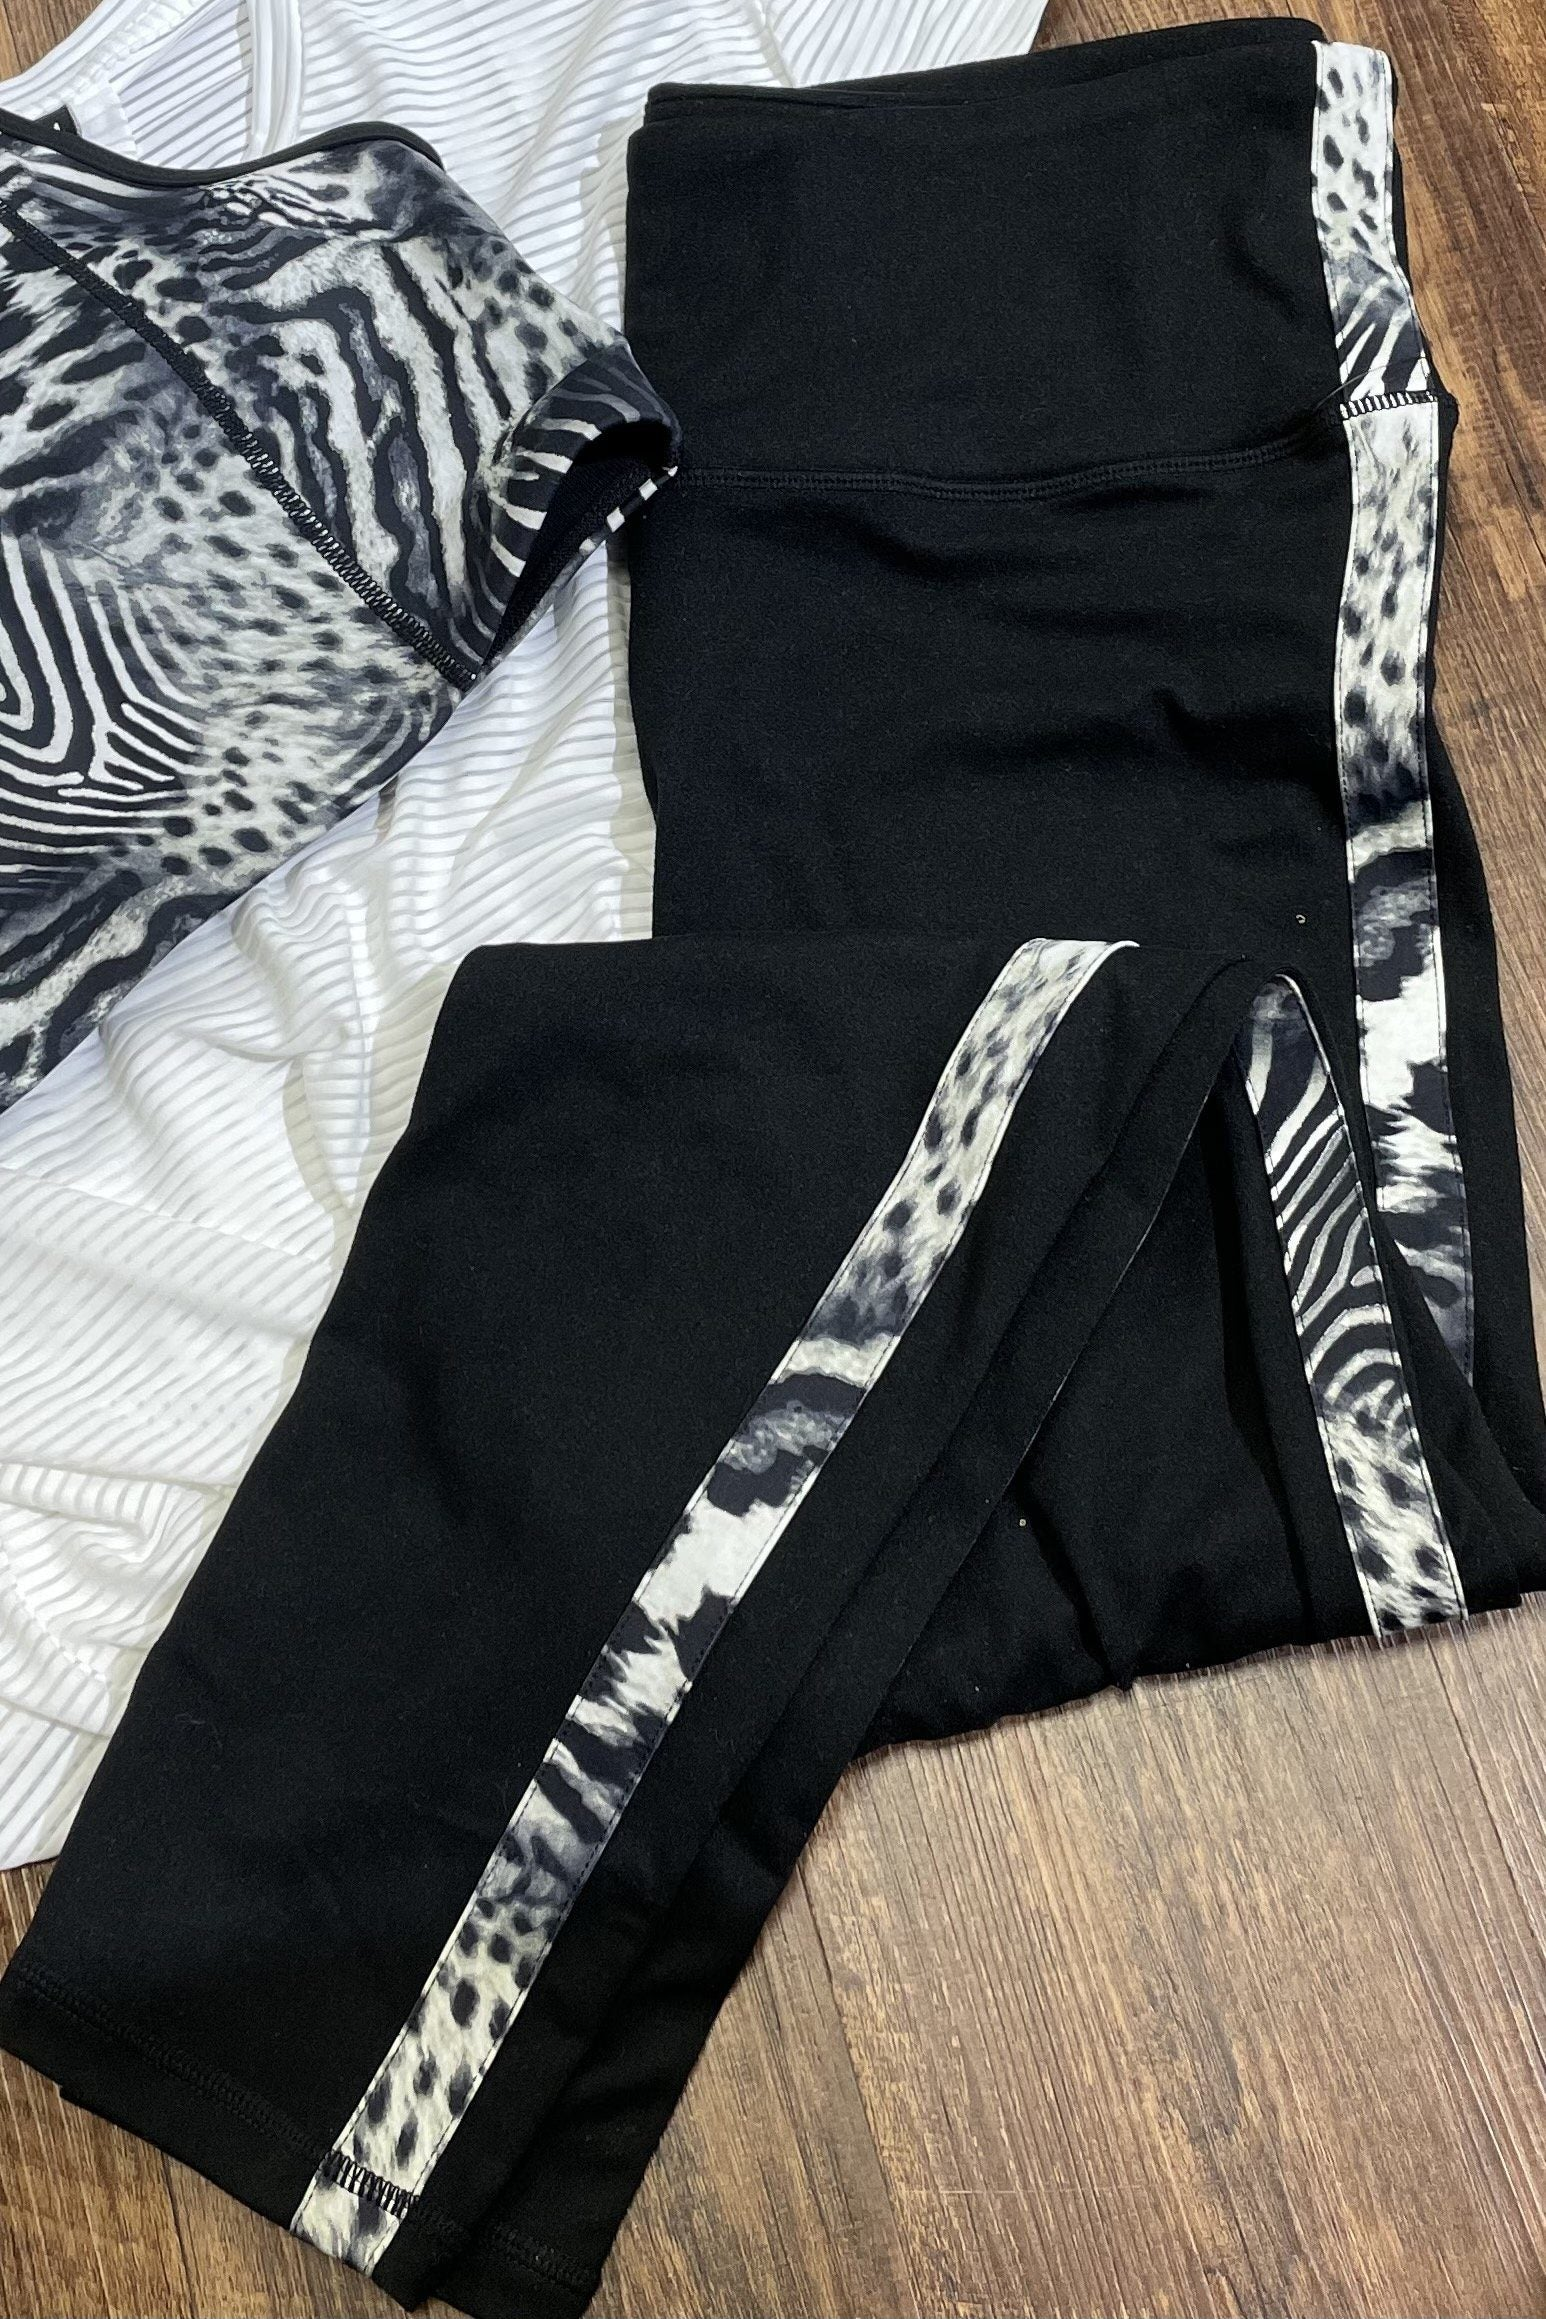 Safari Print Legging UNDER K.Lane's Boutique